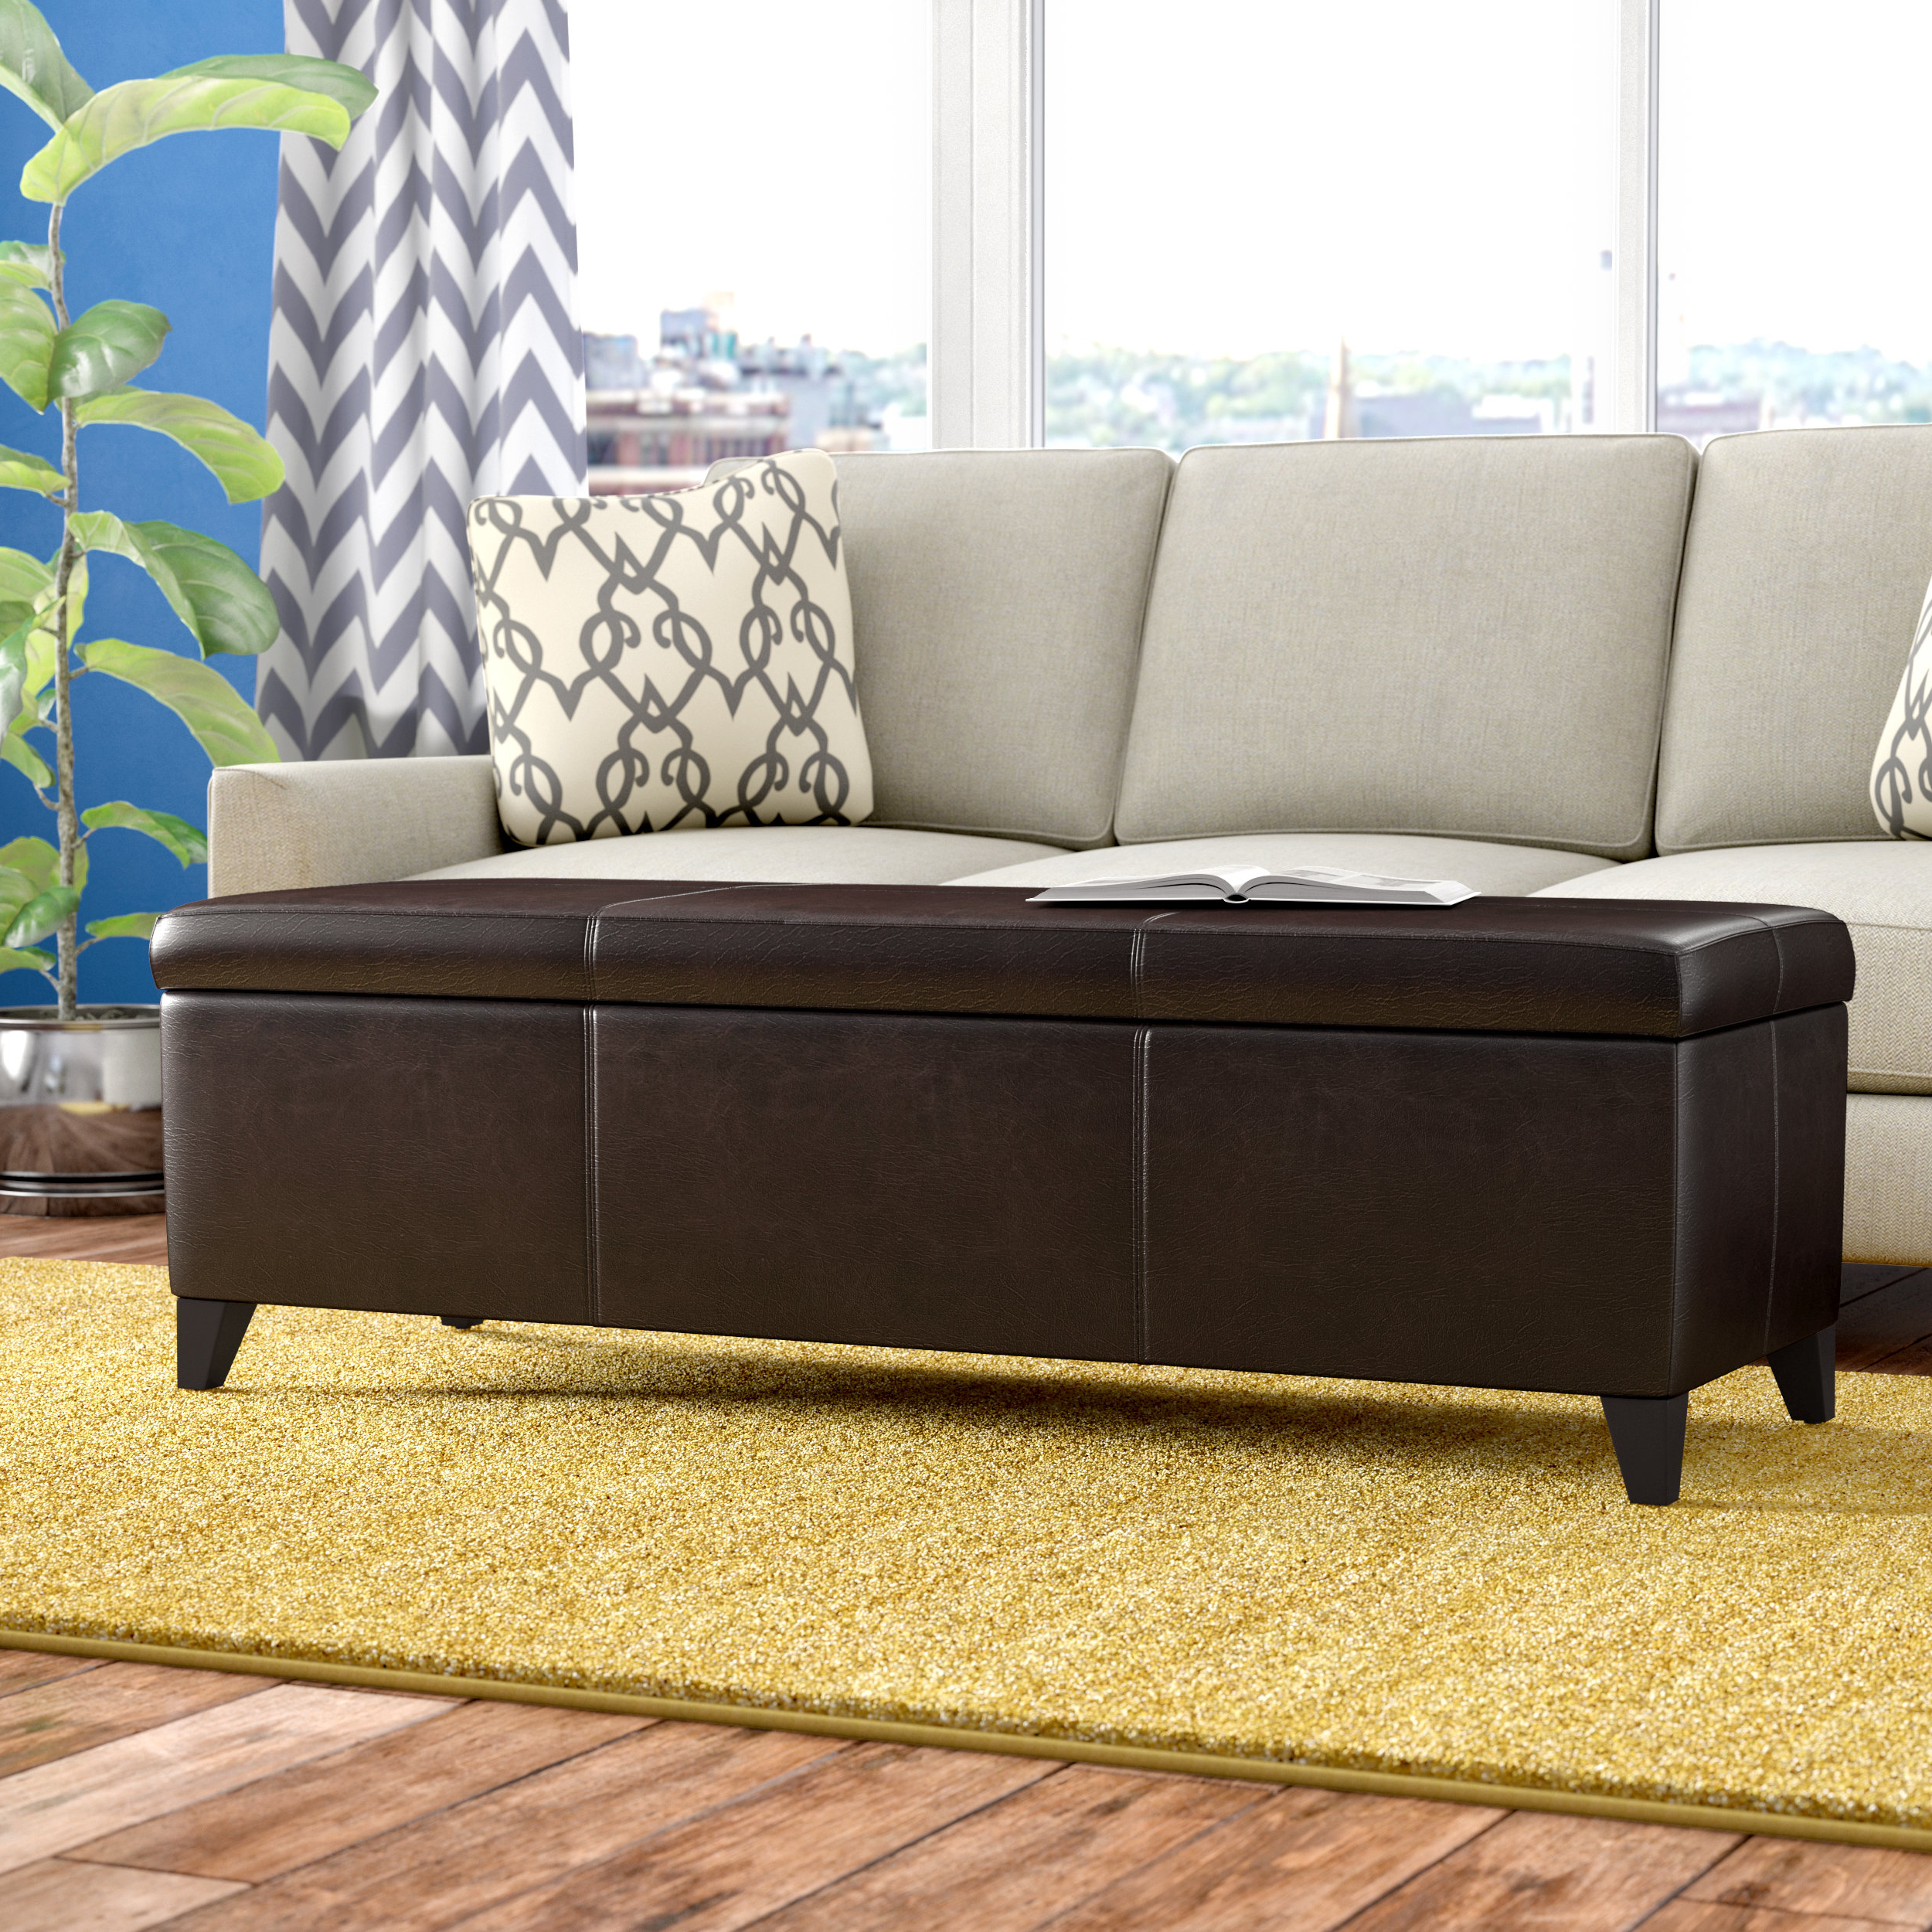 Mill Large Leather Coffee Tables With Favorite Andover Mills Denali Storage Ottoman & Reviews (View 13 of 20)